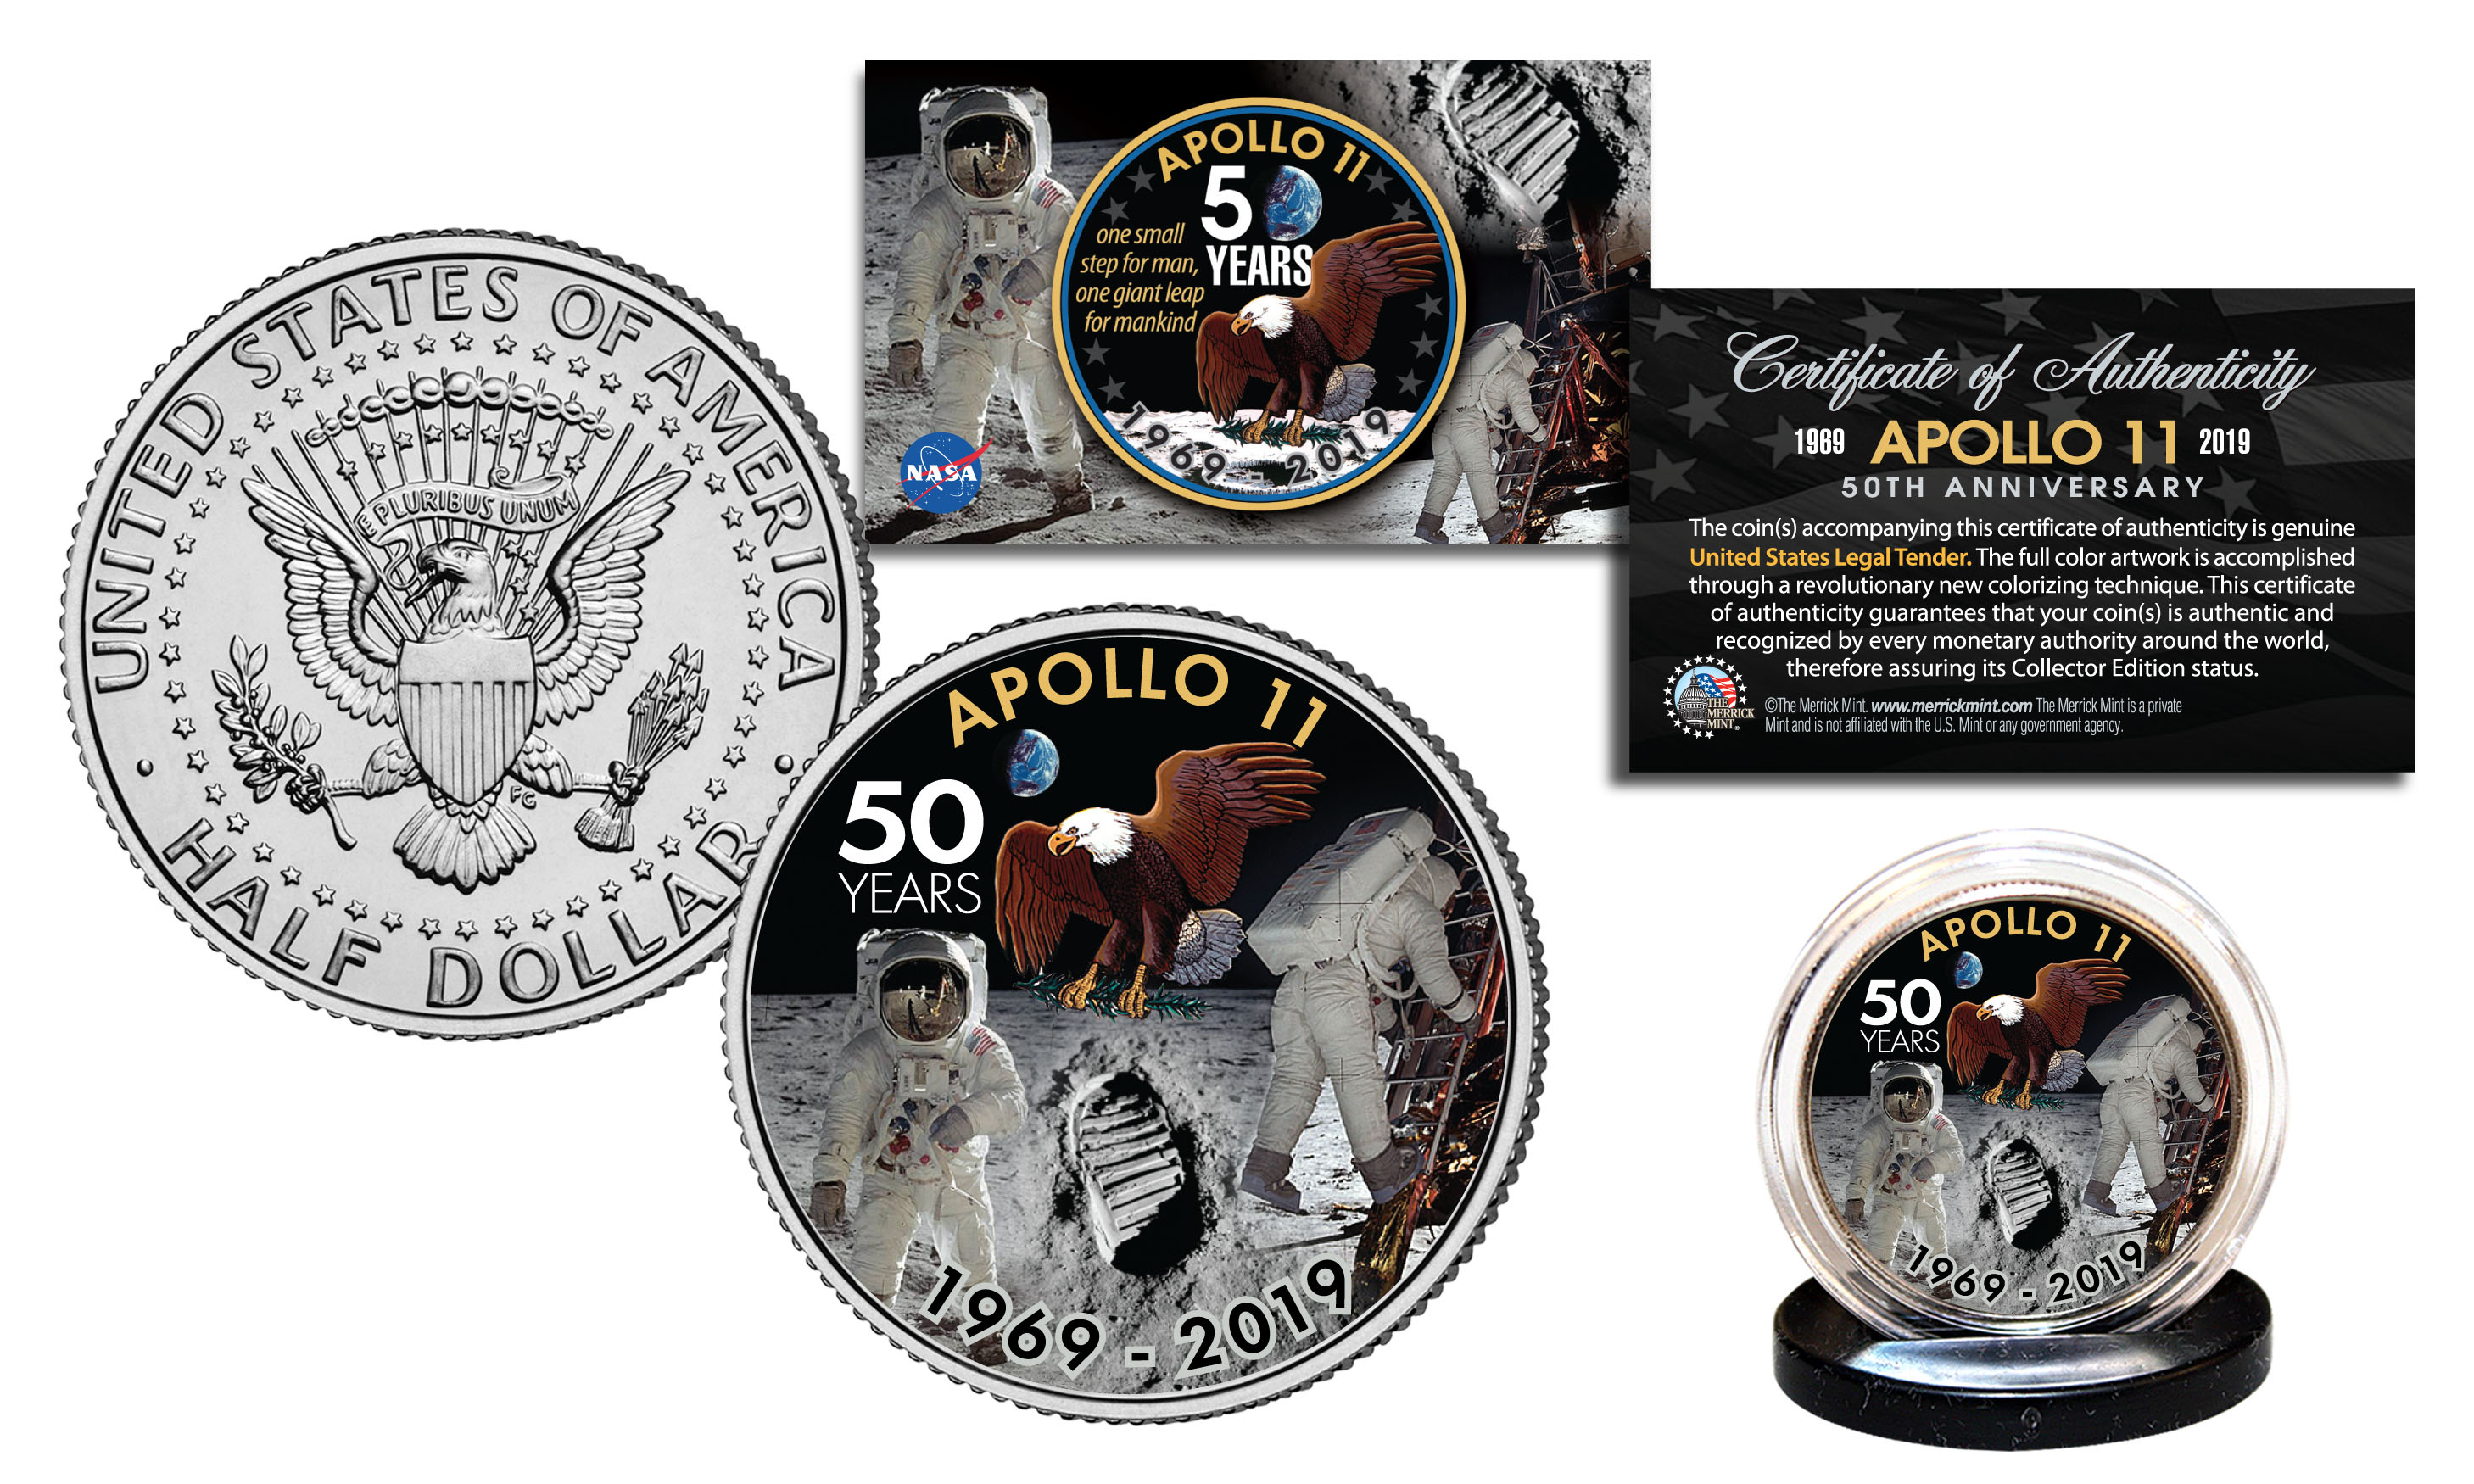 Apollo 11 Nasa Moon Landing 50th Anniversary Official Legal Tender $2 U.s Apollo Bill Without Return Exploration Missions